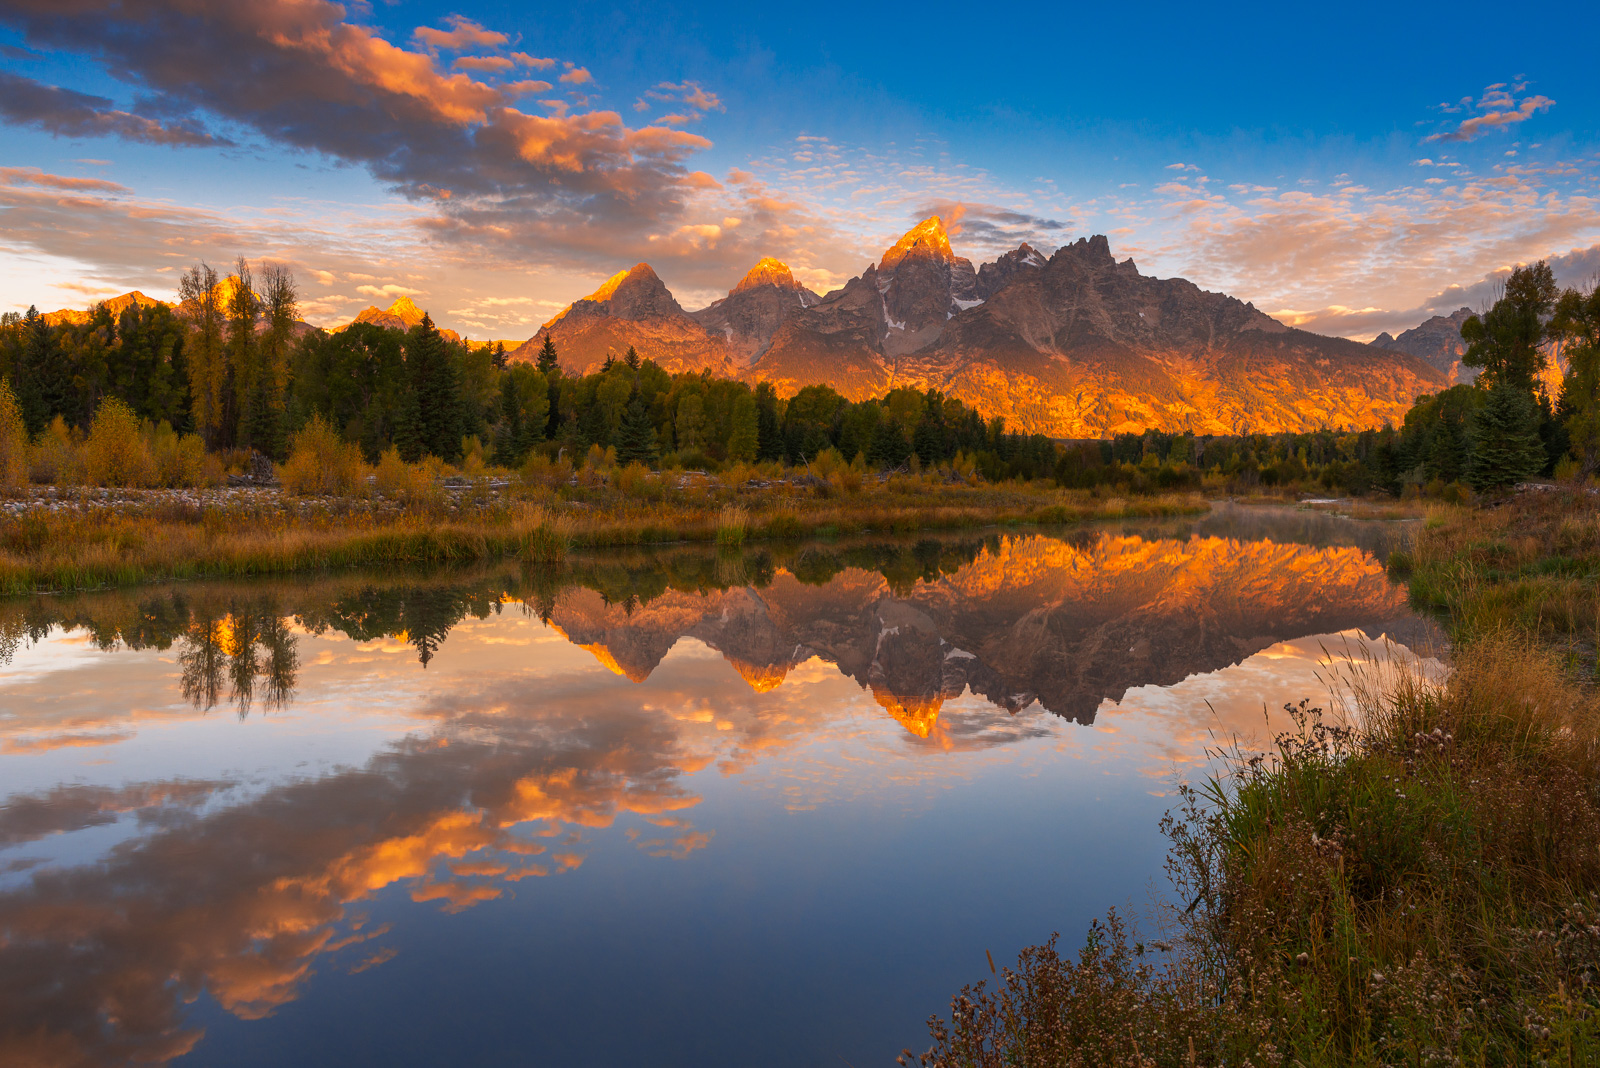 The majestic Teton Range reflected in the still waters of Schwabacher Landing at sunrise, Grand Teton National Park.